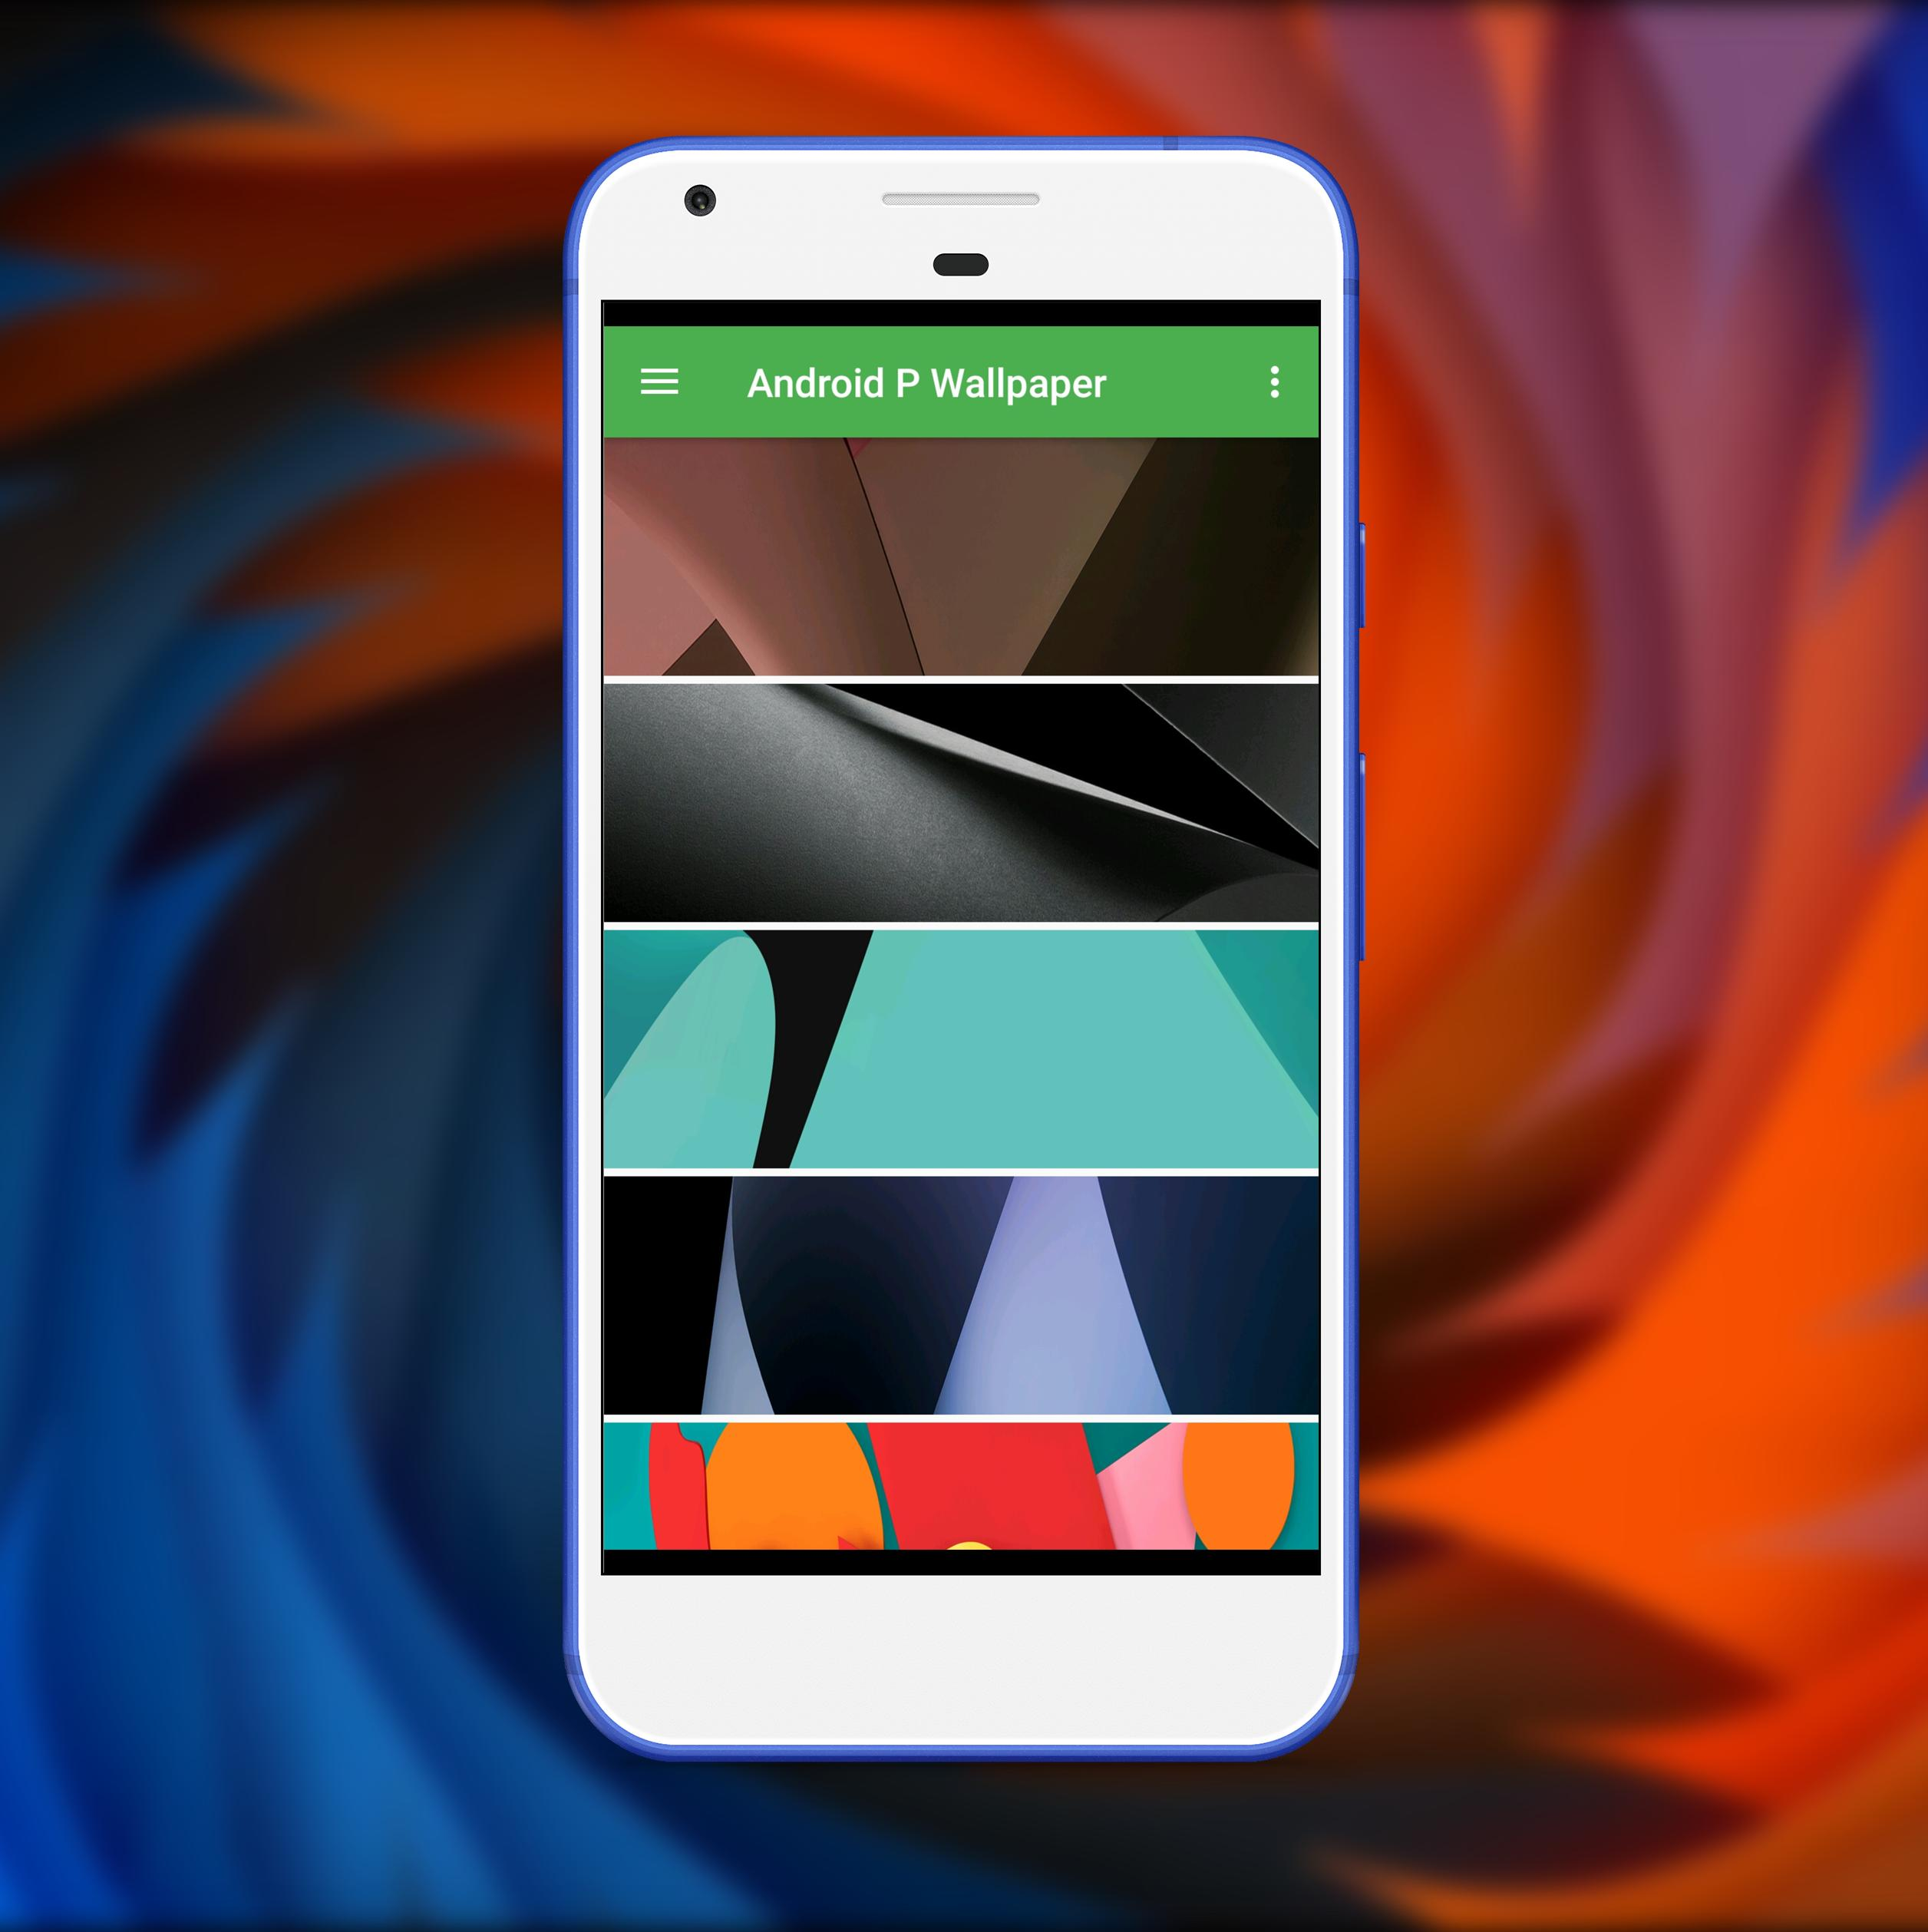 Android P Wallpapers For Android Apk Download